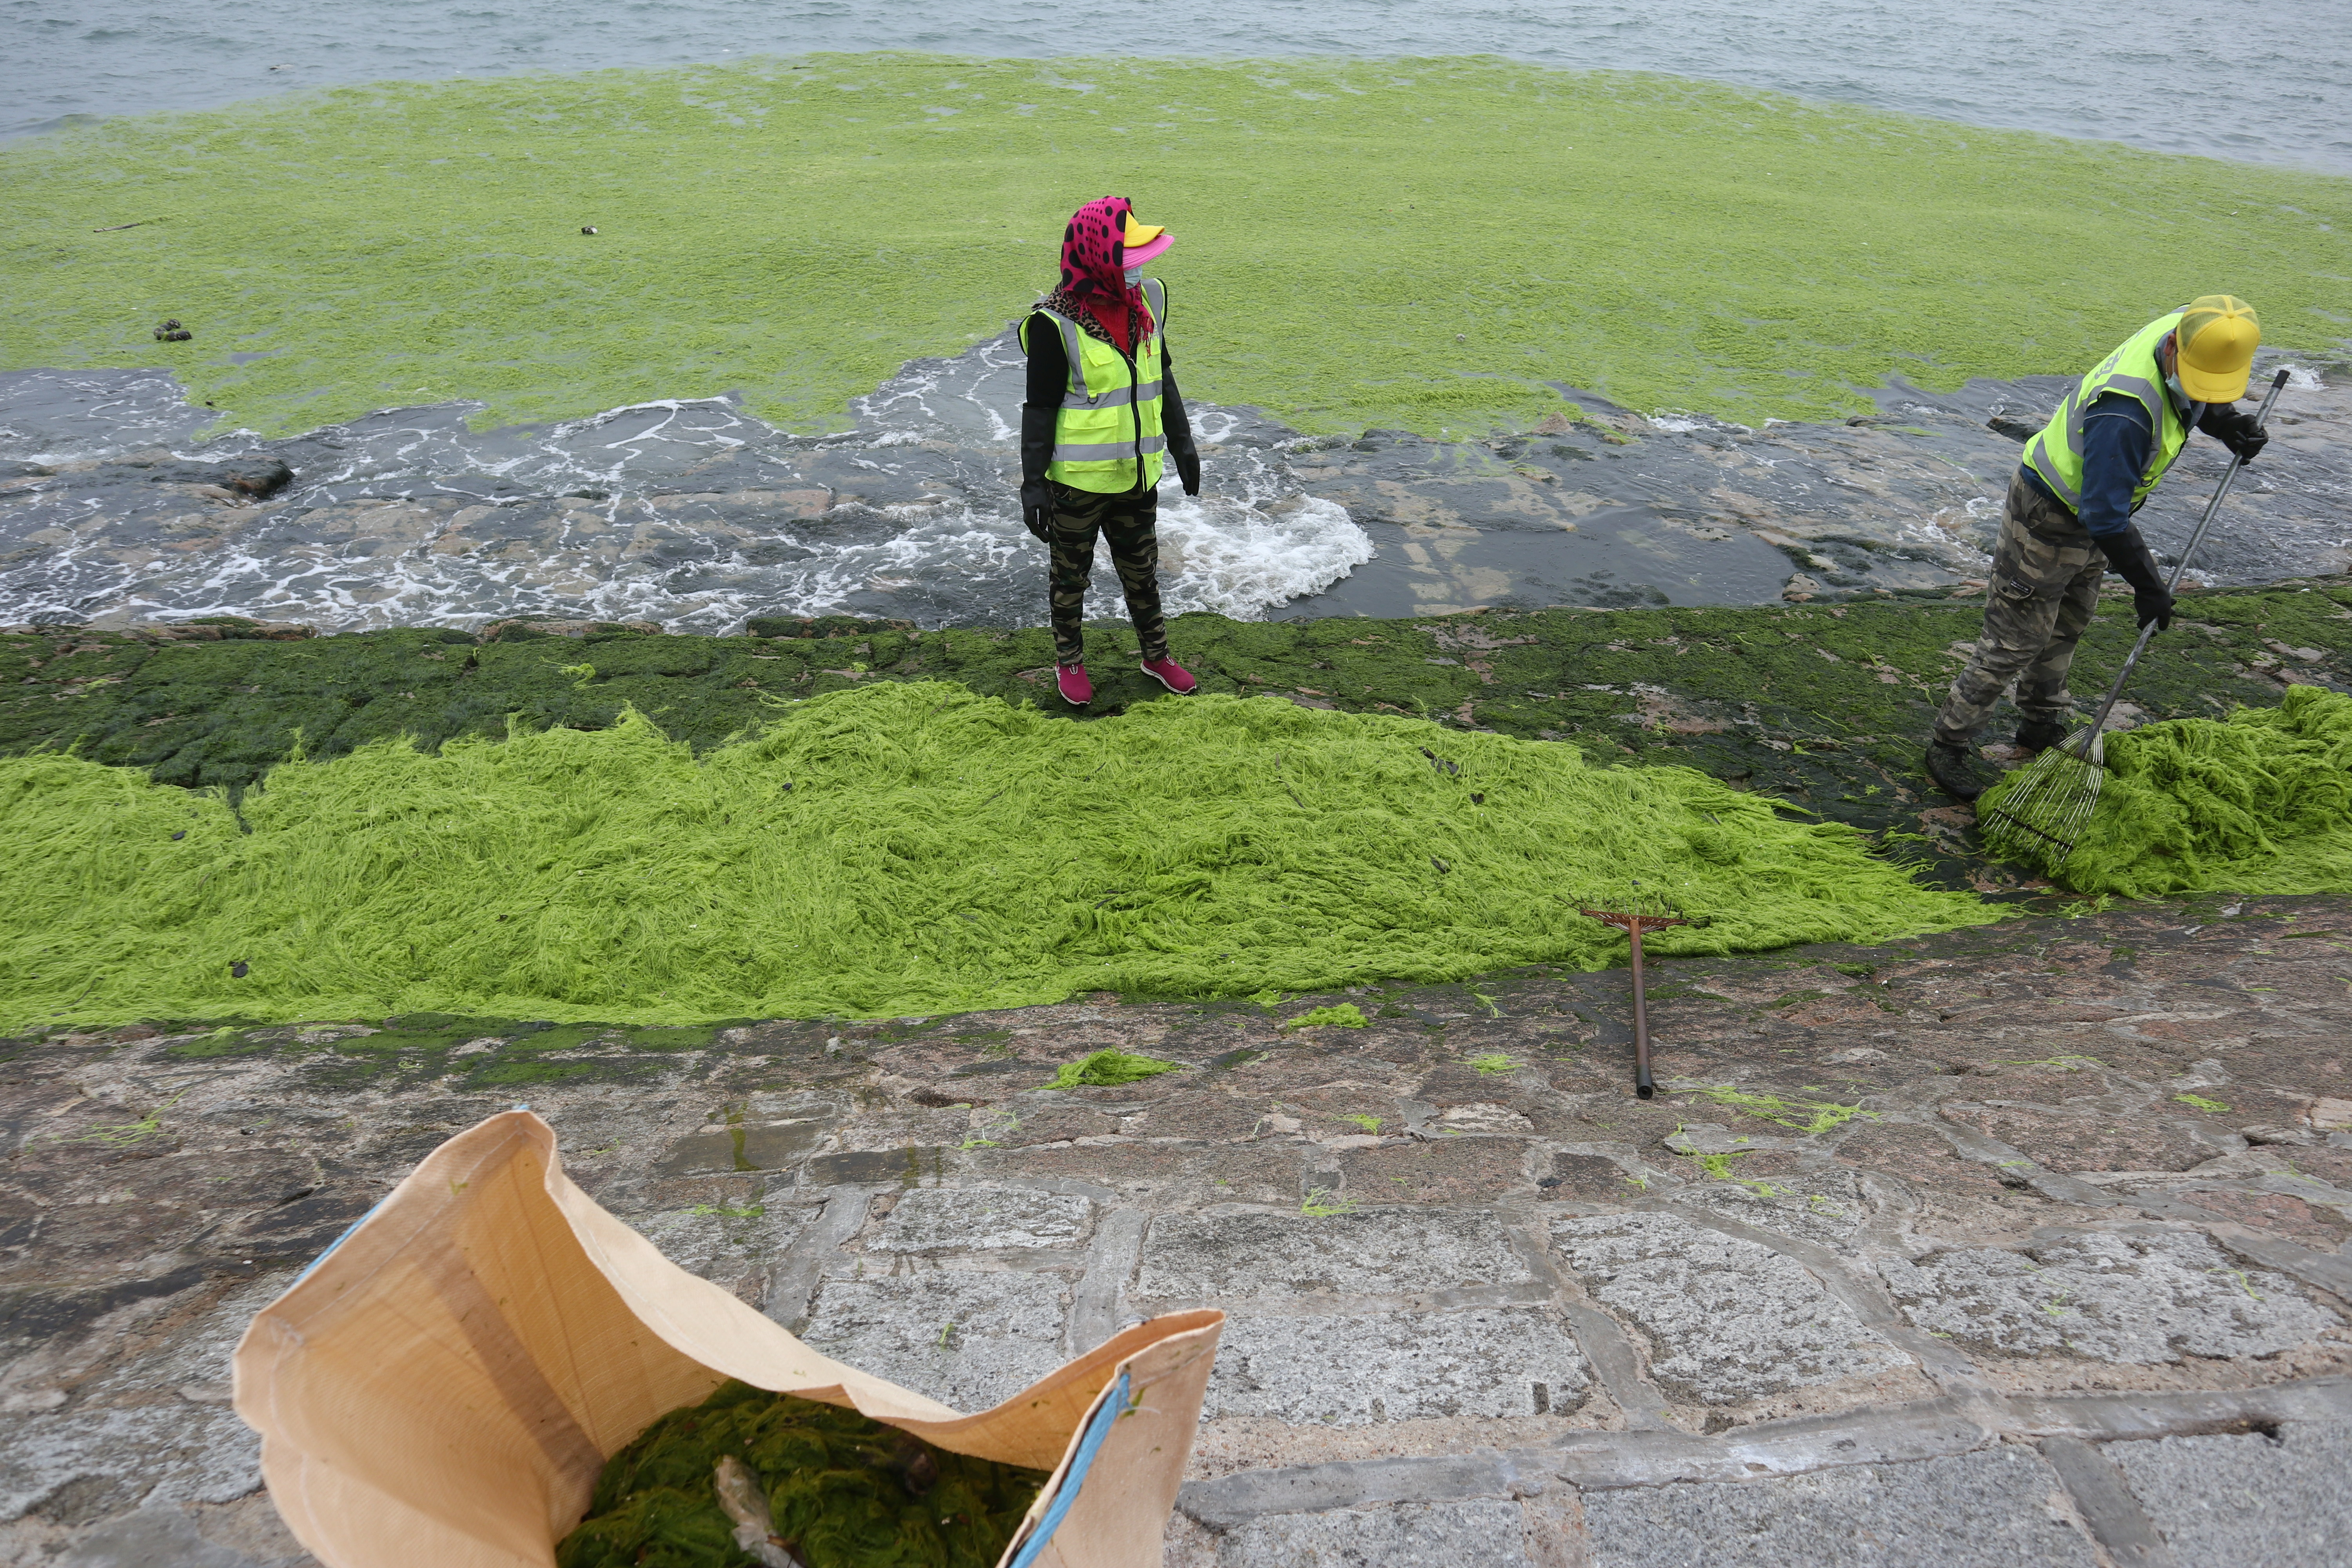 Workers clear algae along the coast in Qingdao, Shandong province, China June 12, 2021. Picture taken June 12, 2021. China Daily via REUTERS